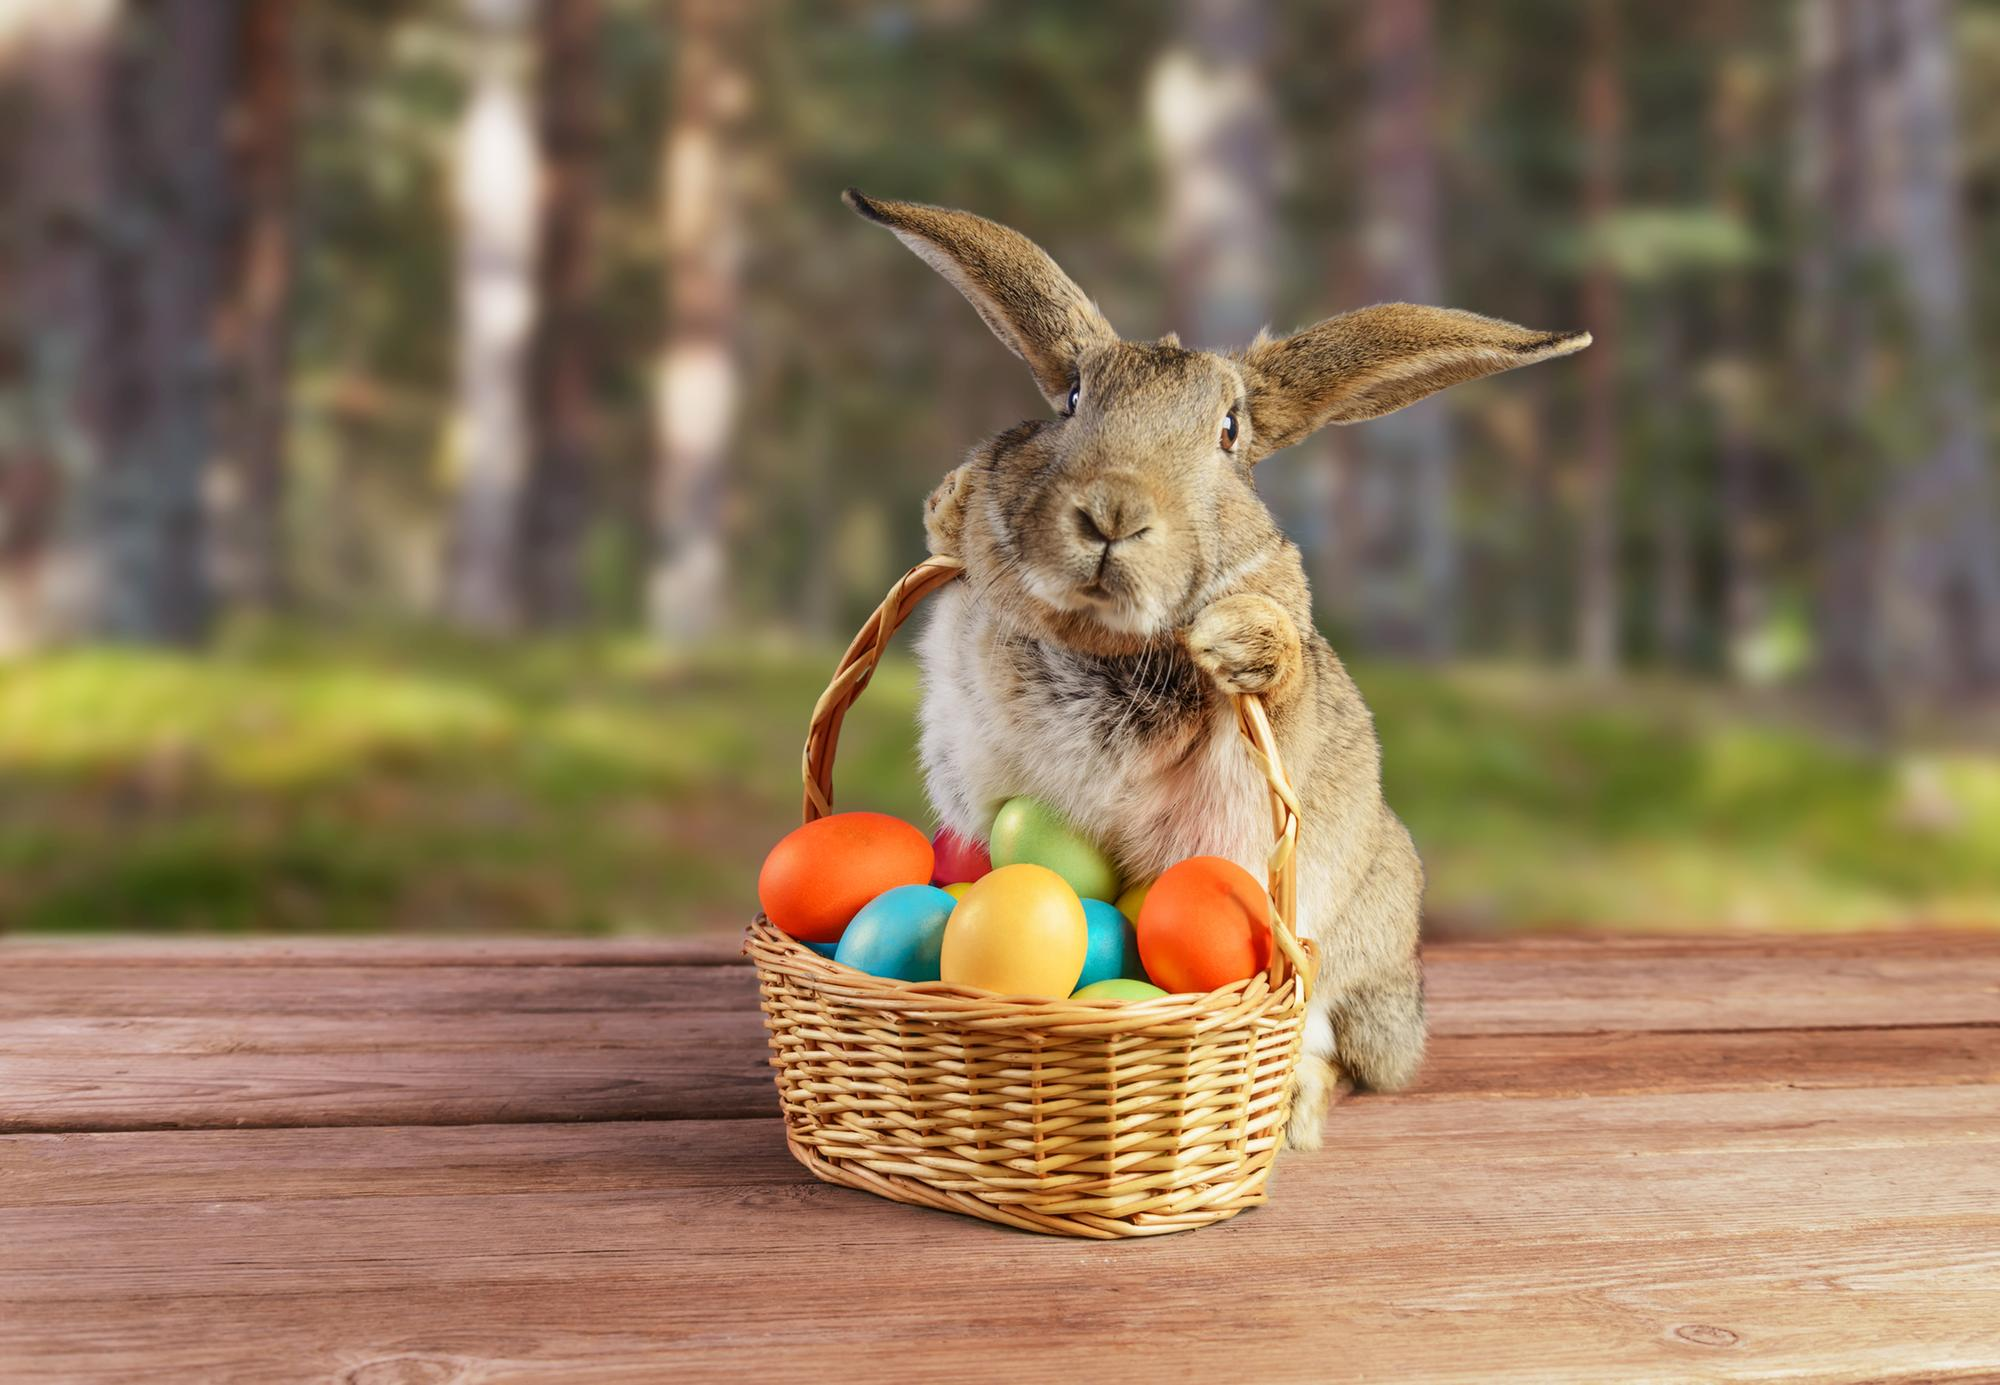 When Does The Easter Bunny Come Story Behind The Famous Rabbit We Celebrate At Easter And When He Delivers Chocolate Eggs The Scotsman